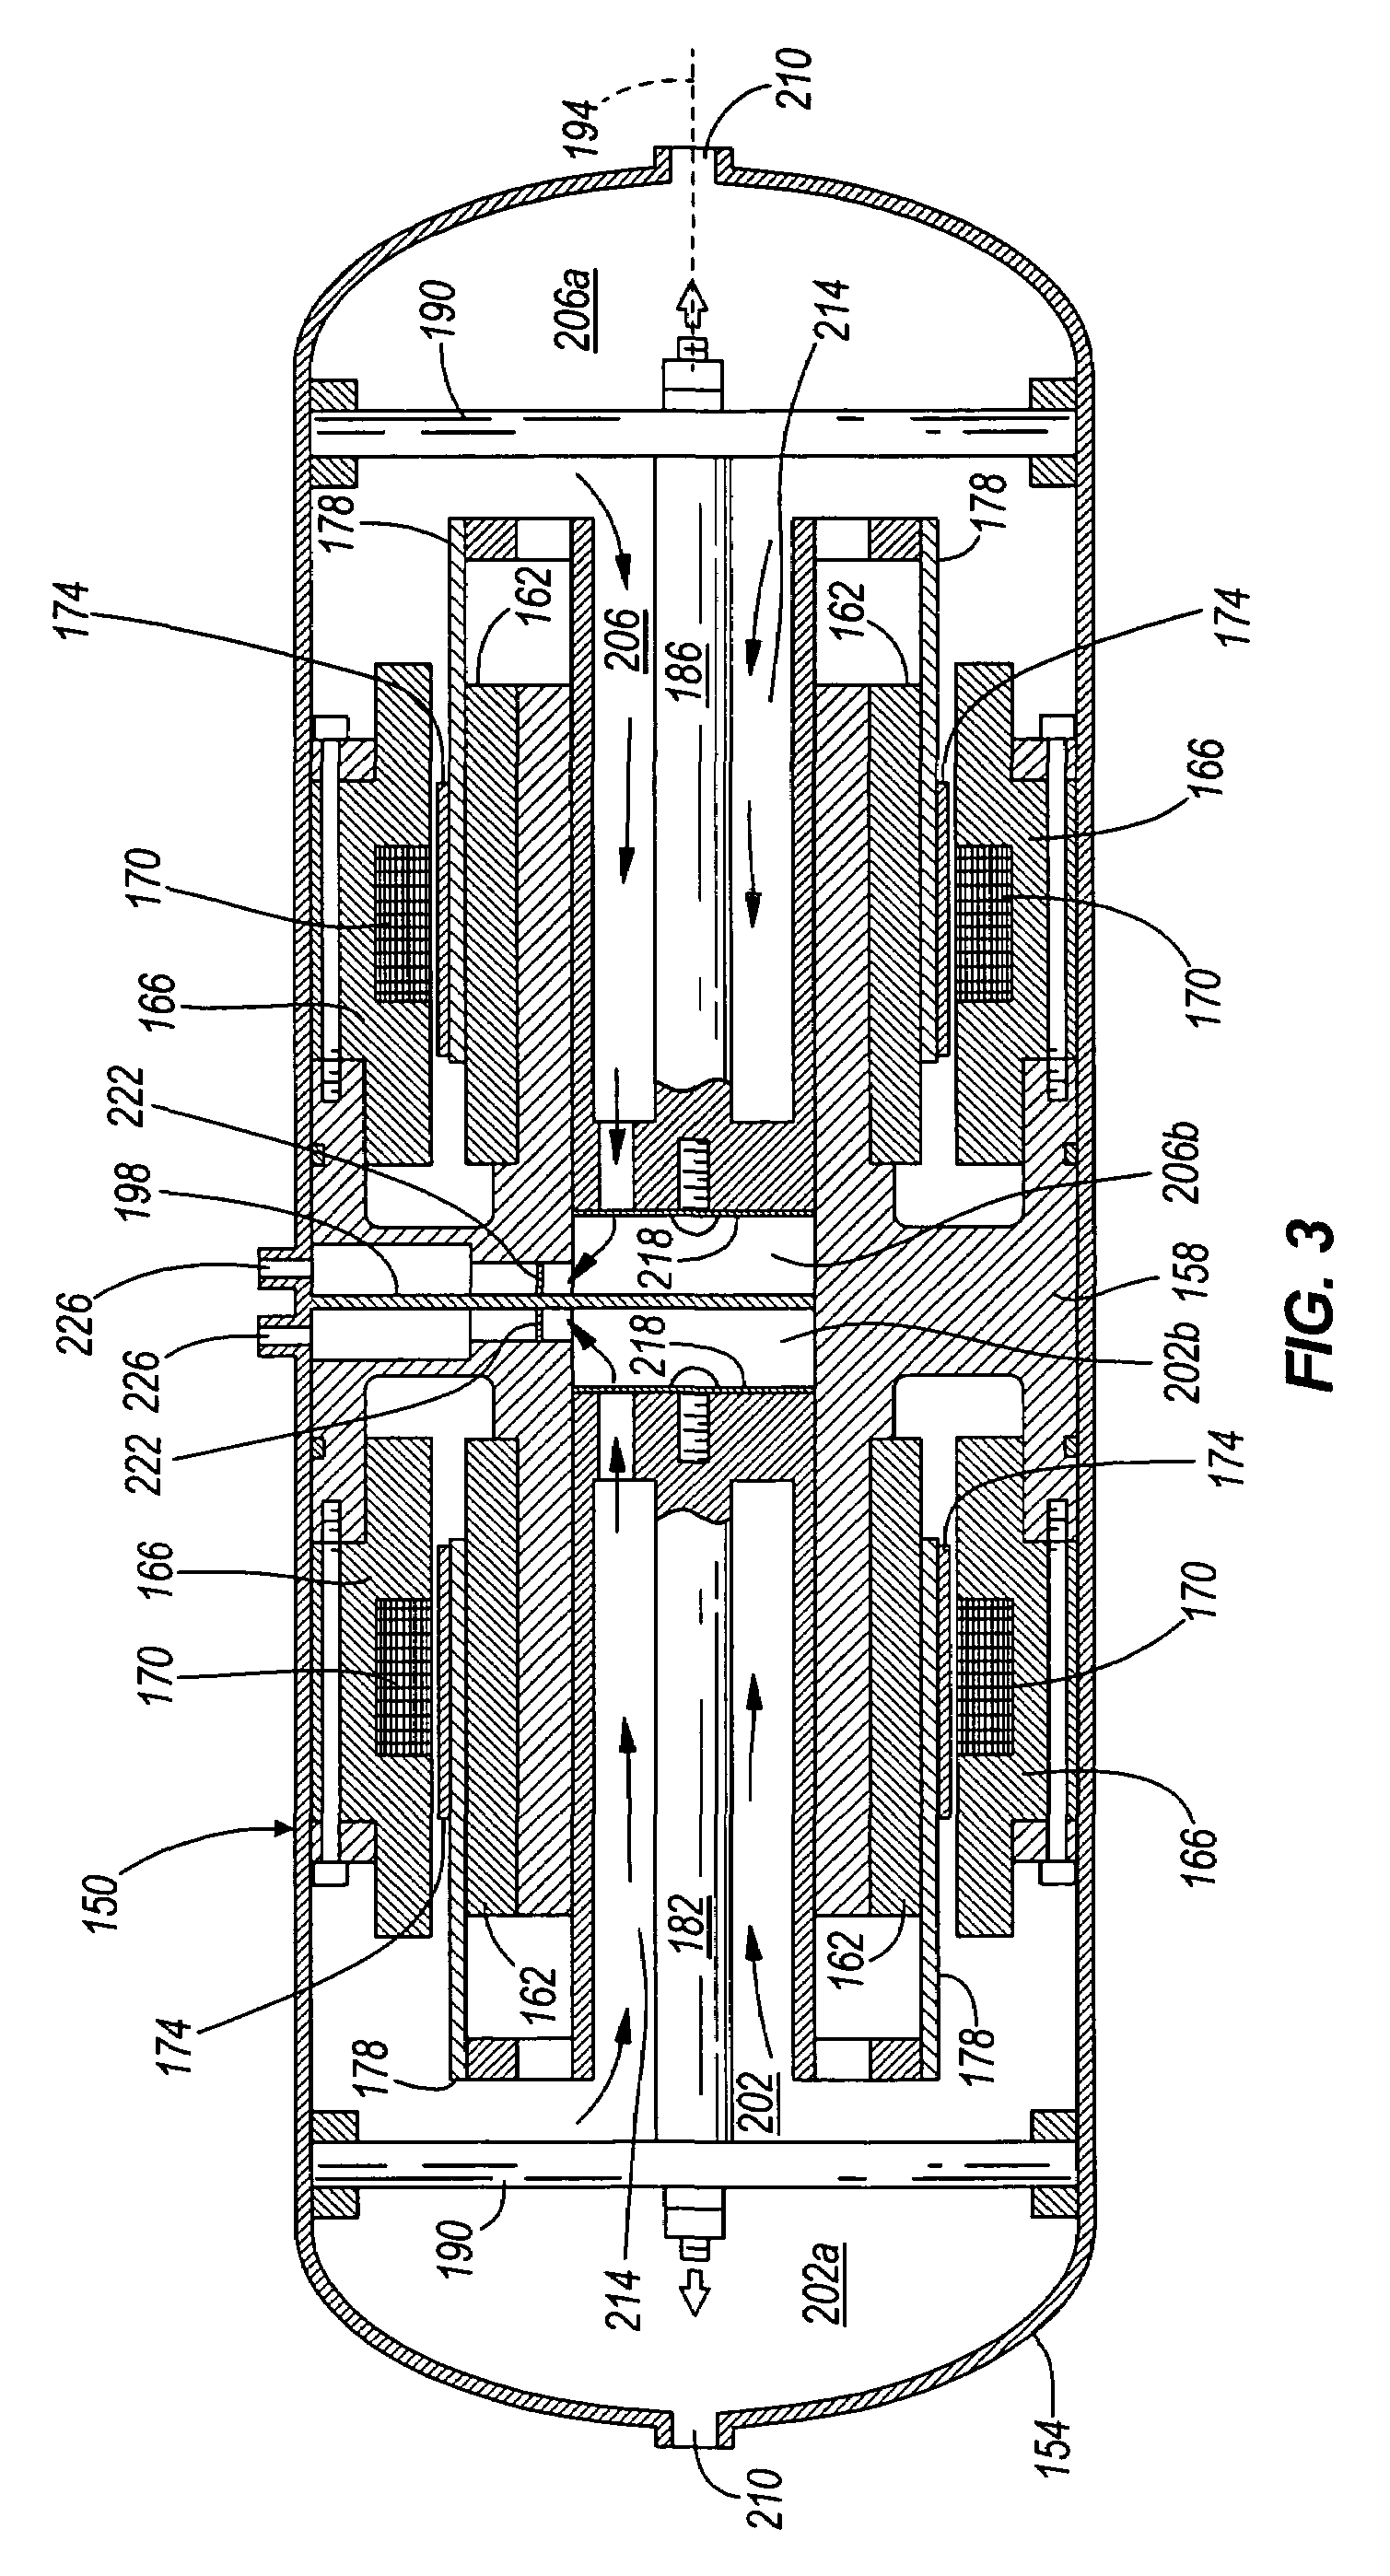 patent us7478539 - two-stage linear compressor